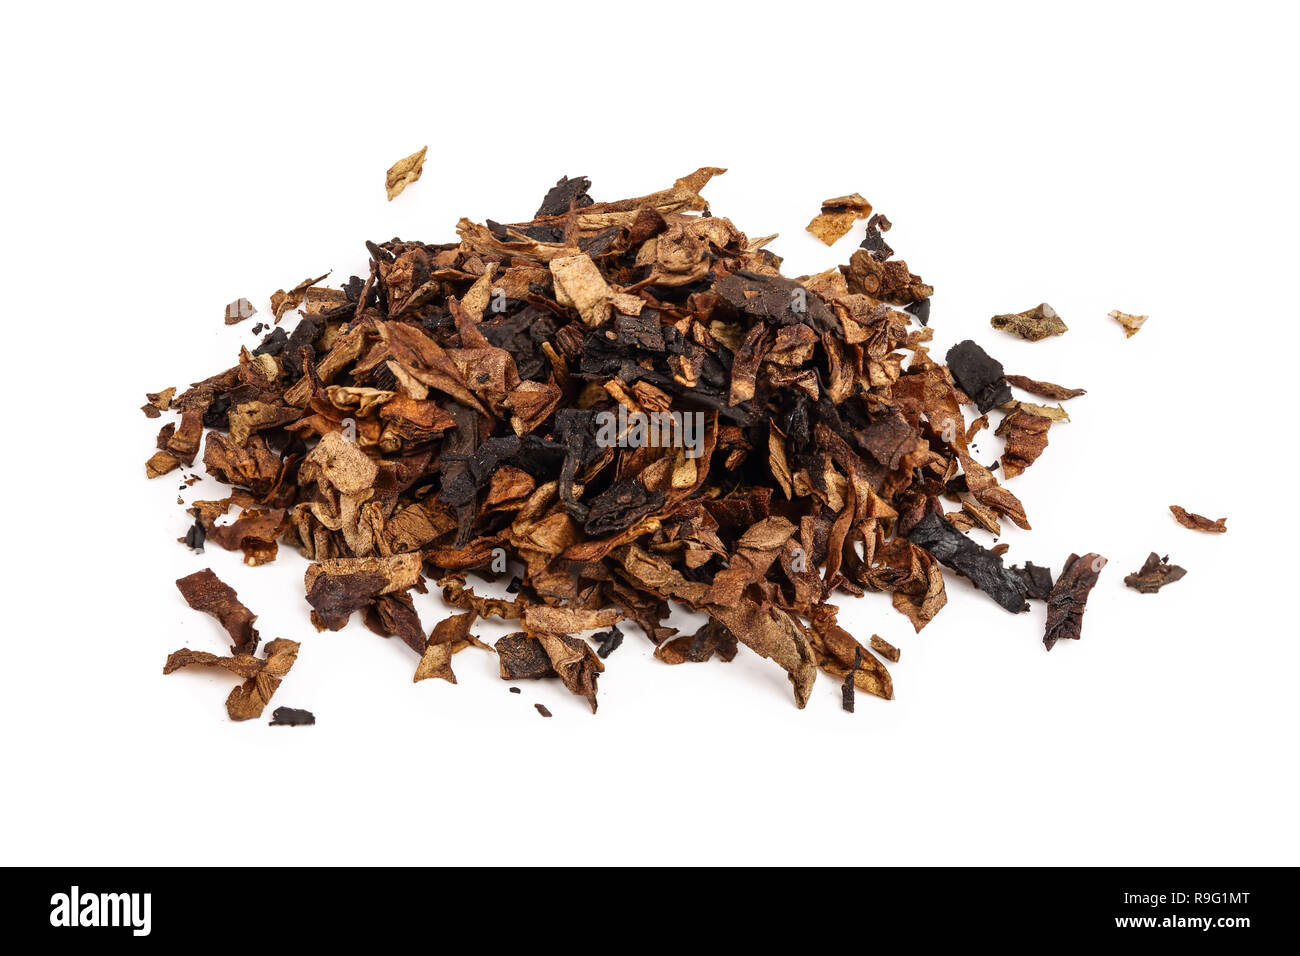 dried smoking tobacco isolated on white background. - Stock Image